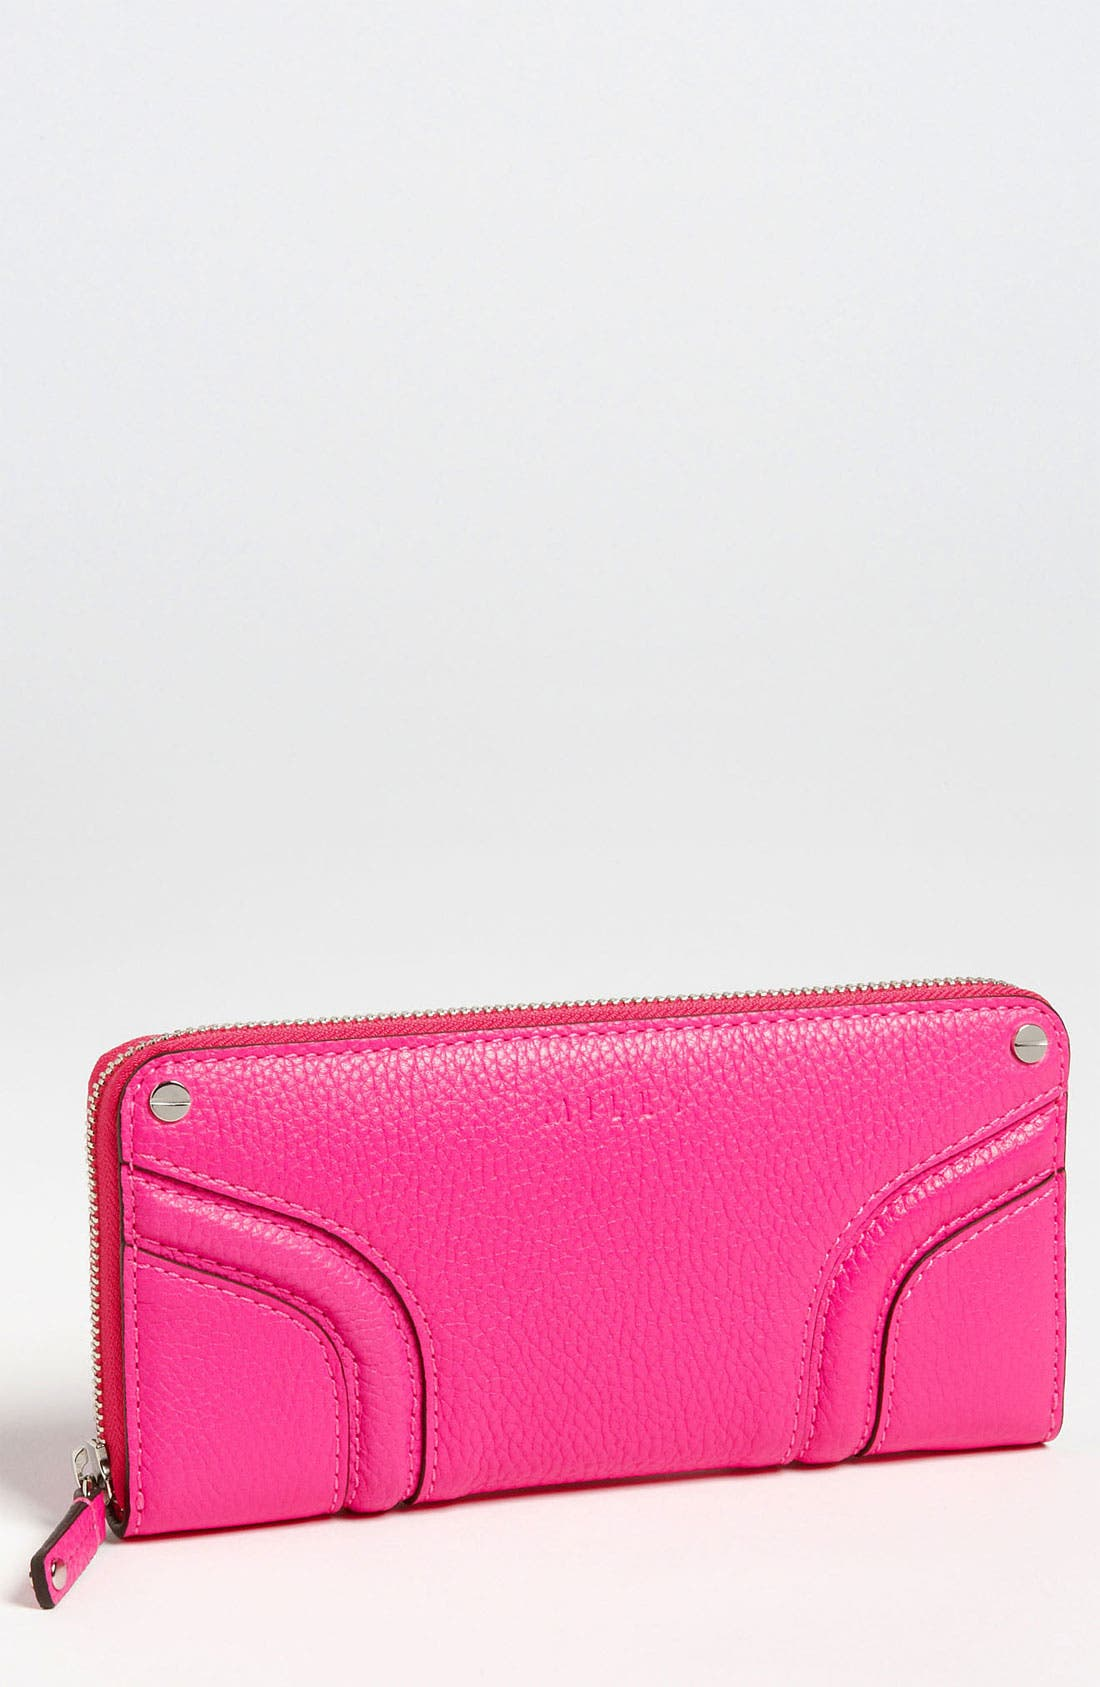 Alternate Image 1 Selected - Milly 'Zoey' Zip Around Wallet